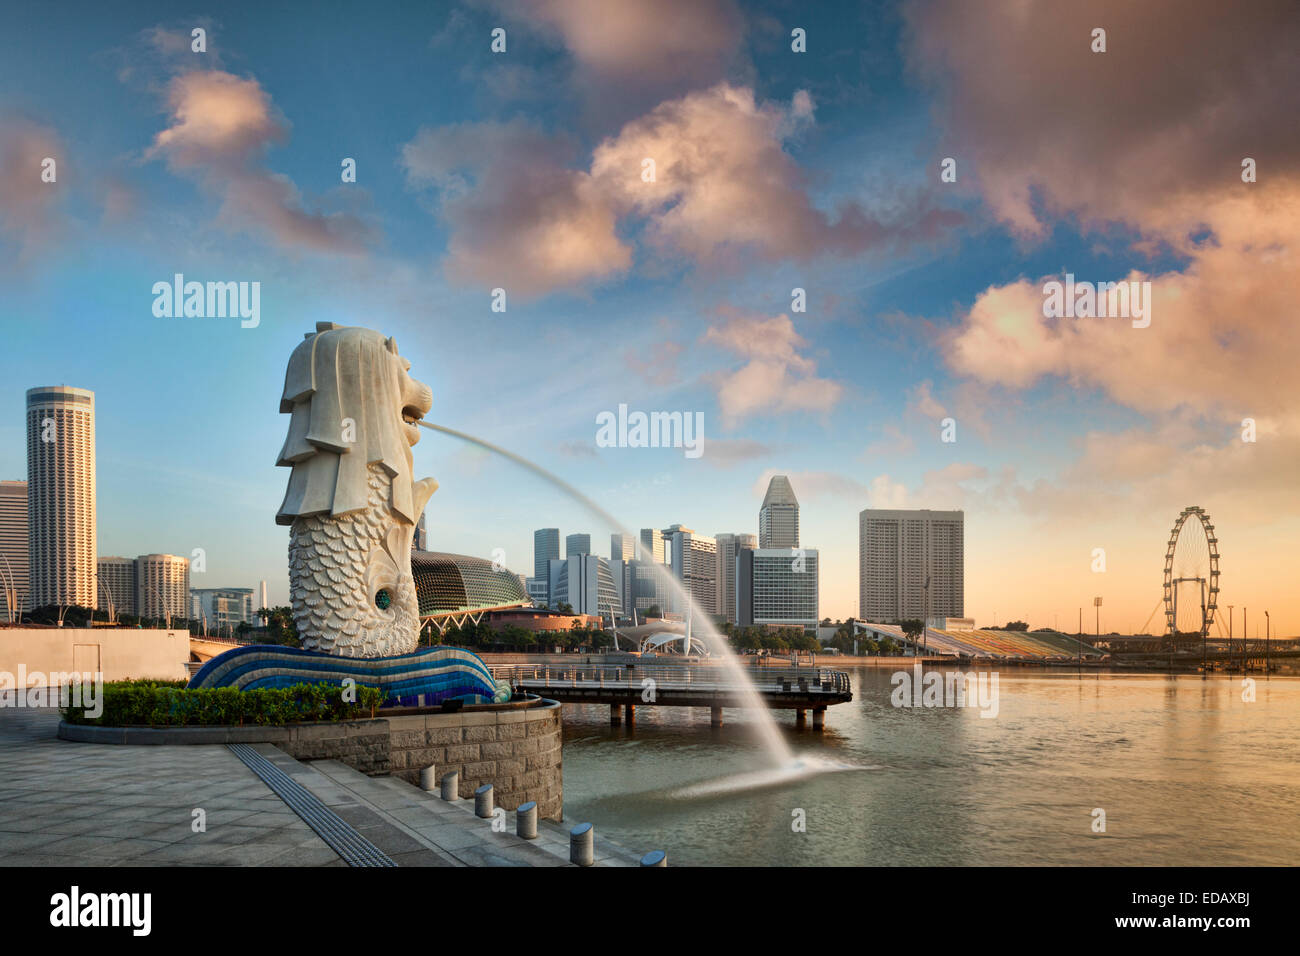 The Merlion, the symbol of the city of Singapore, at sunrise. - Stock Image